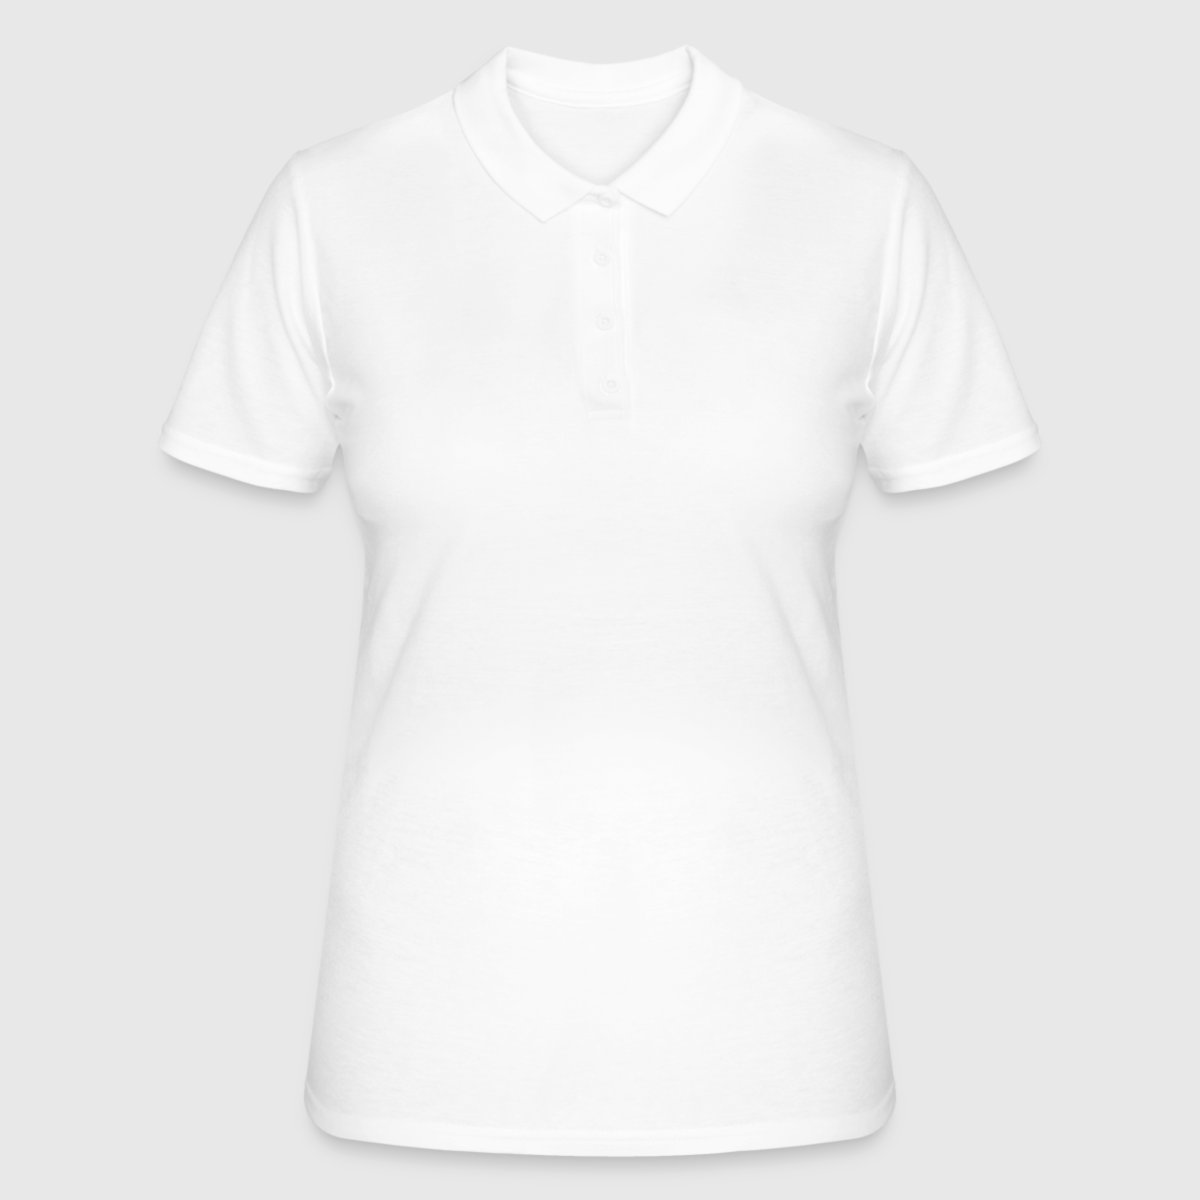 Women's Polo Shirt - Voor